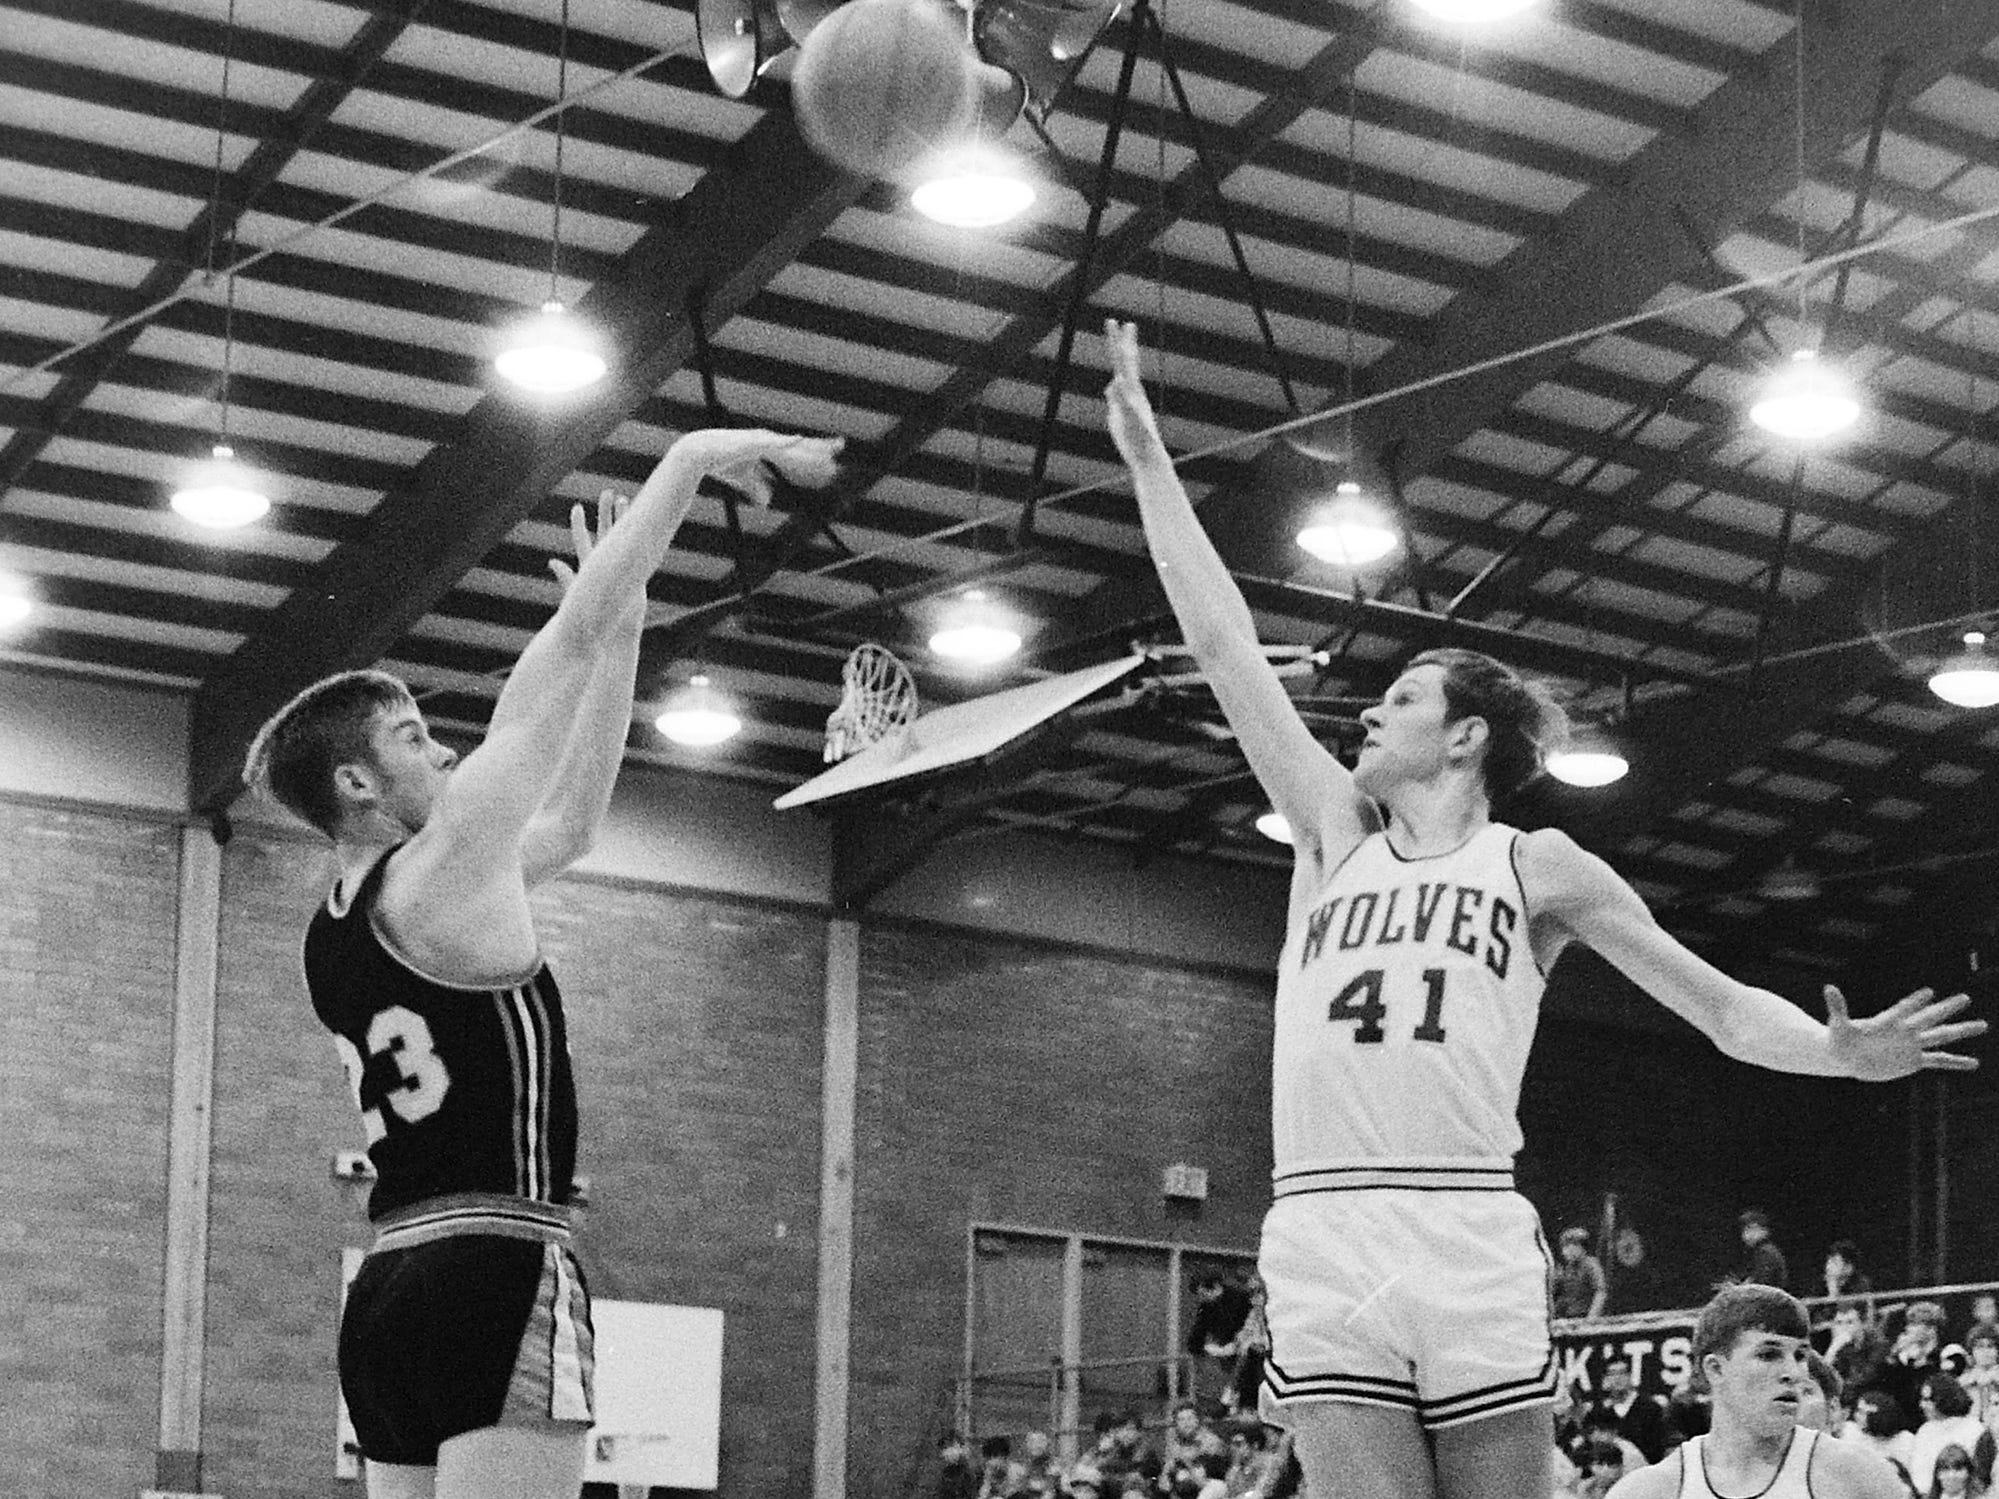 01/17/70